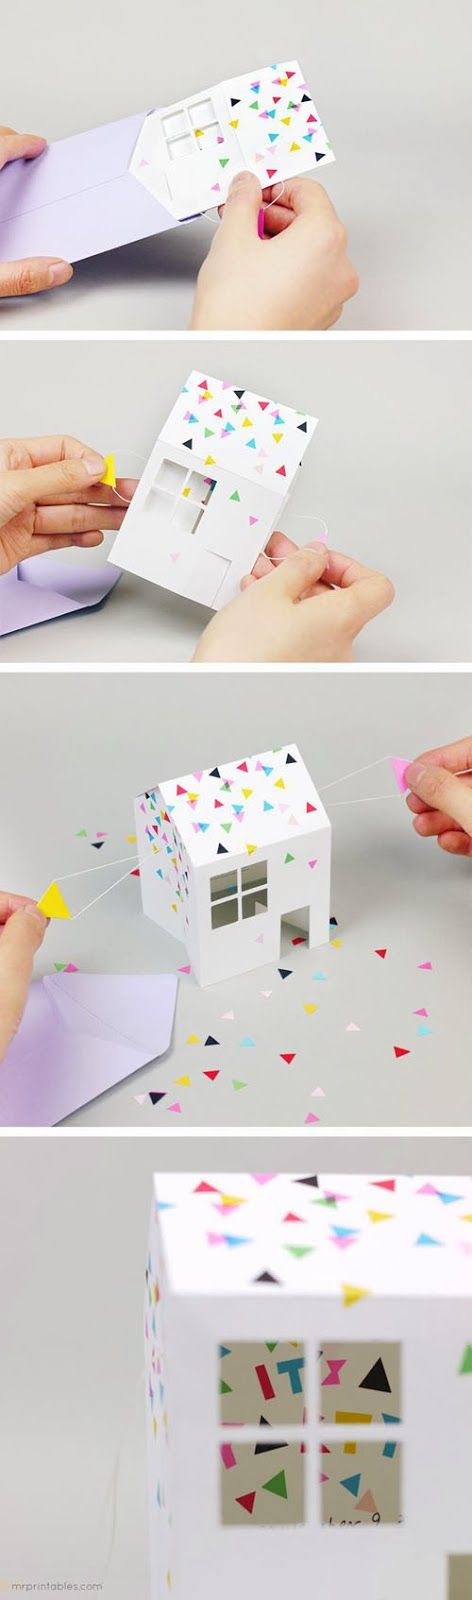 New Home or Celebrate CARD - 3-D House - mommo design: PAPER CRAFTS